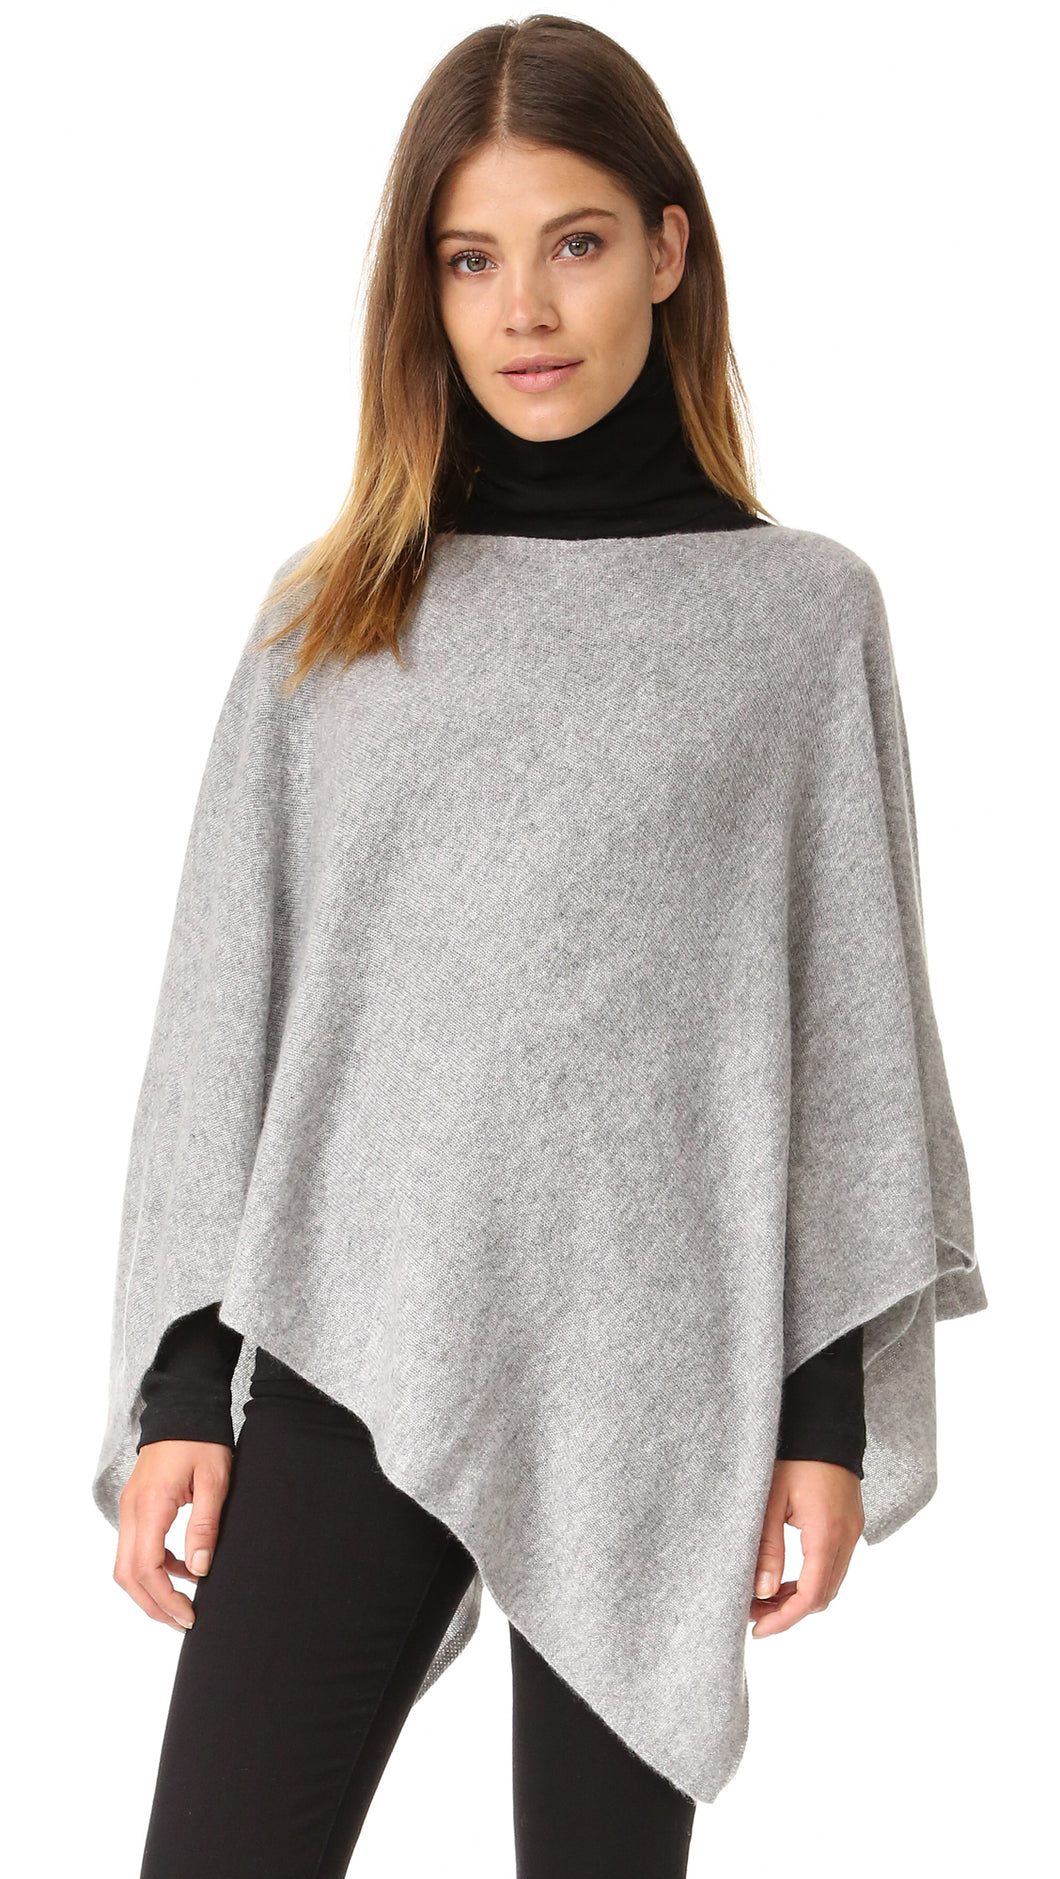 WHITE & WARREN Poncho - Grey Heather